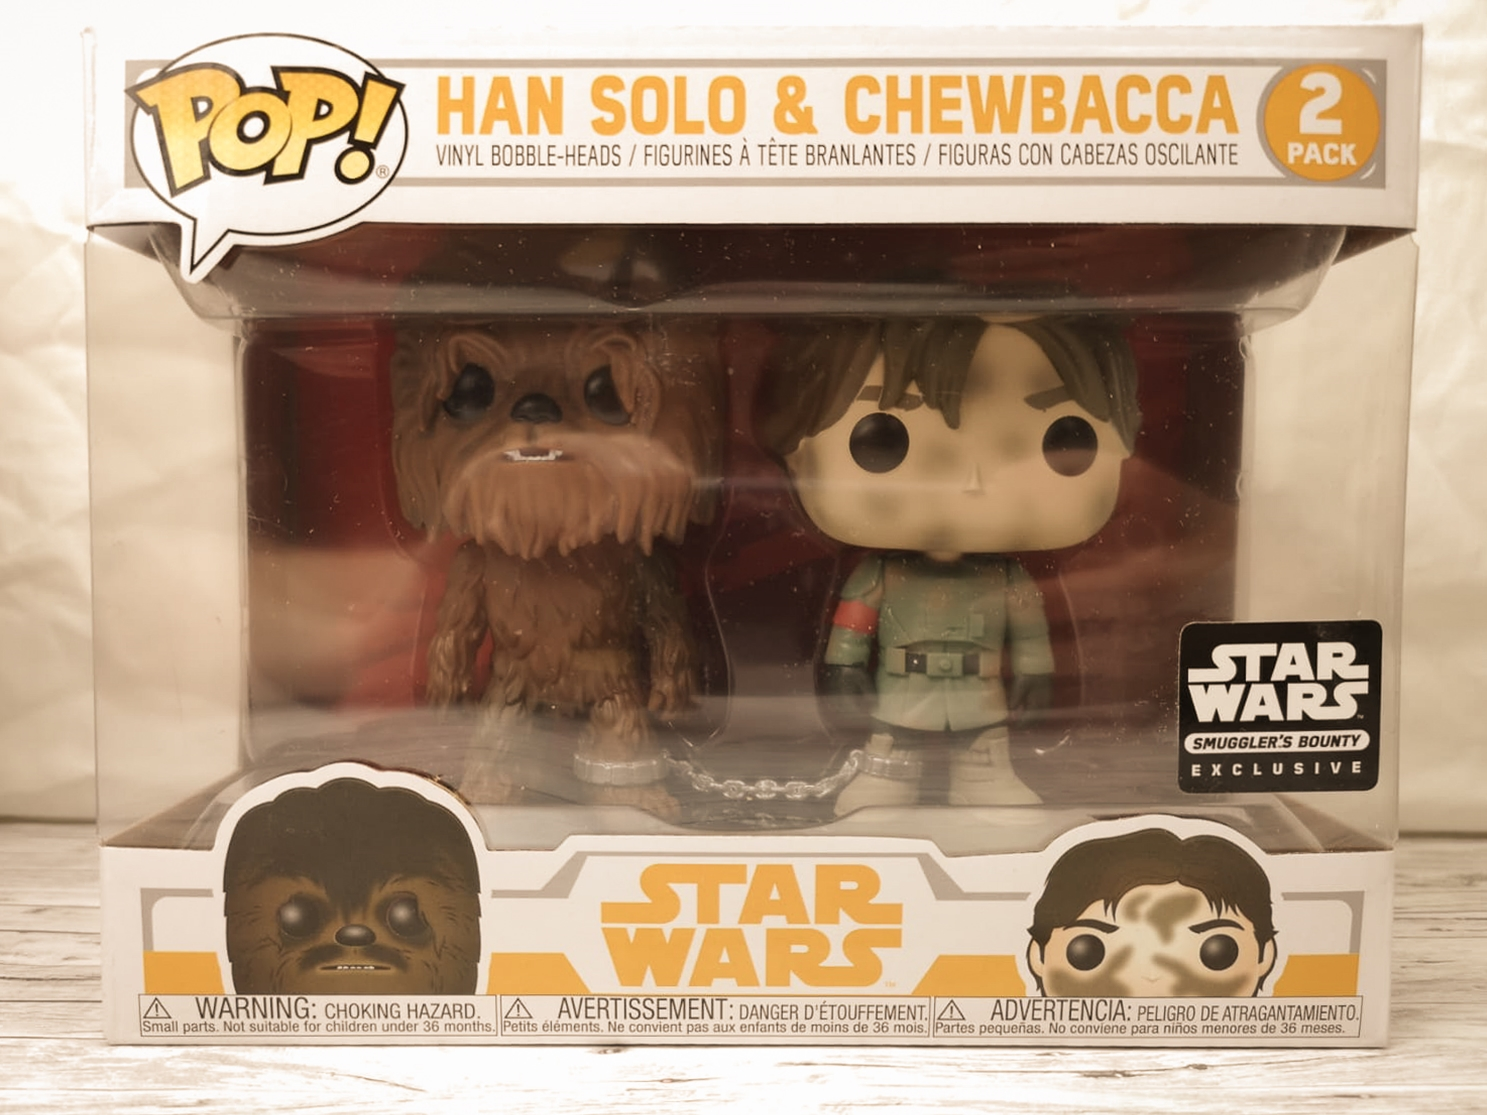 Star Wars Smugglers Bounty Han Solo Chewbacca Funko 2 pack exclusive.jpg